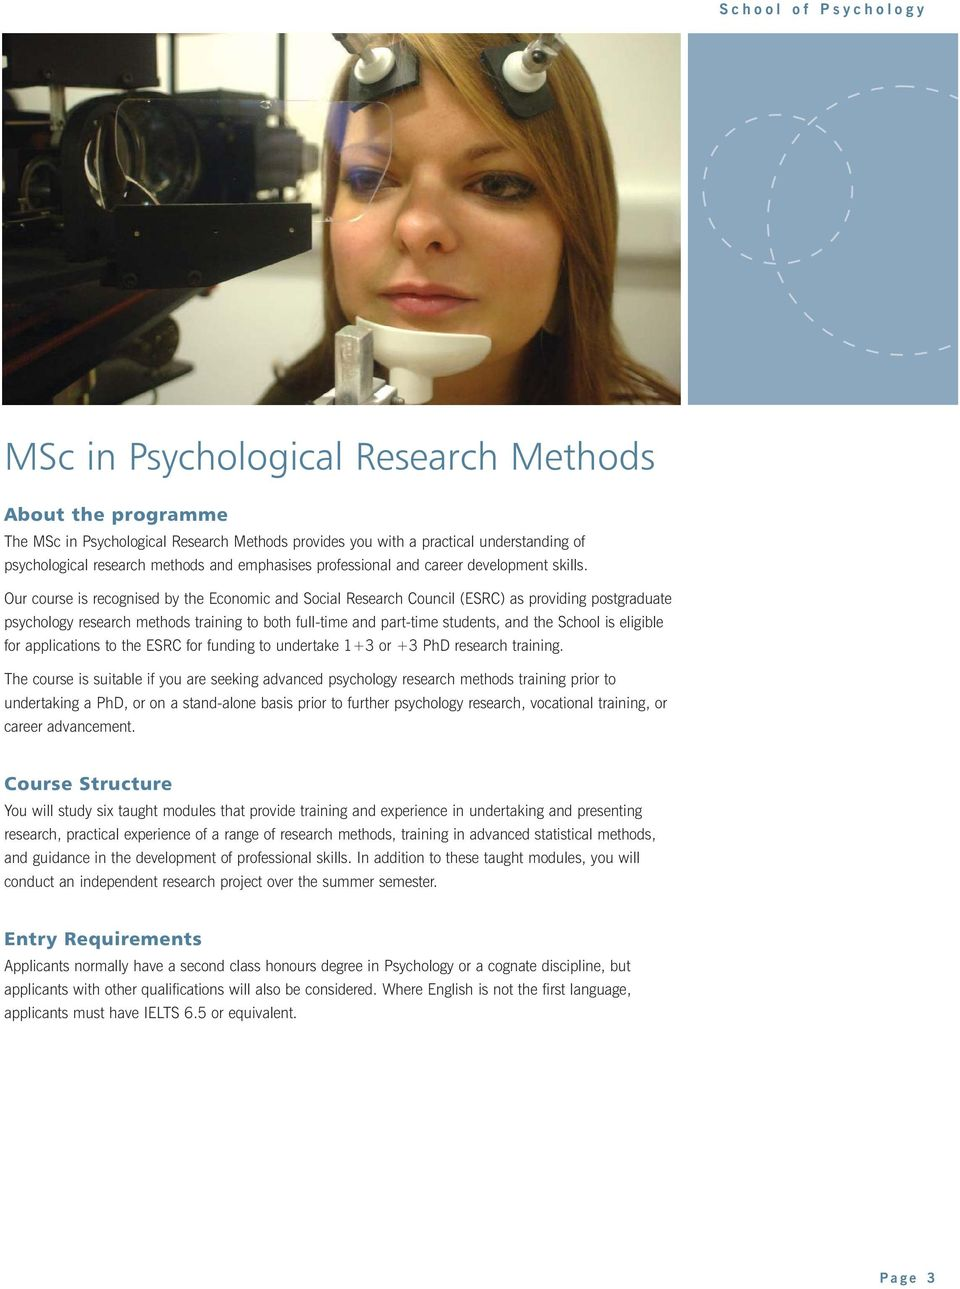 Our course is recognised by the Economic and Social Research Council (ESRC) as providing postgraduate psychology research methods training to both full-time and part-time students, and the School is